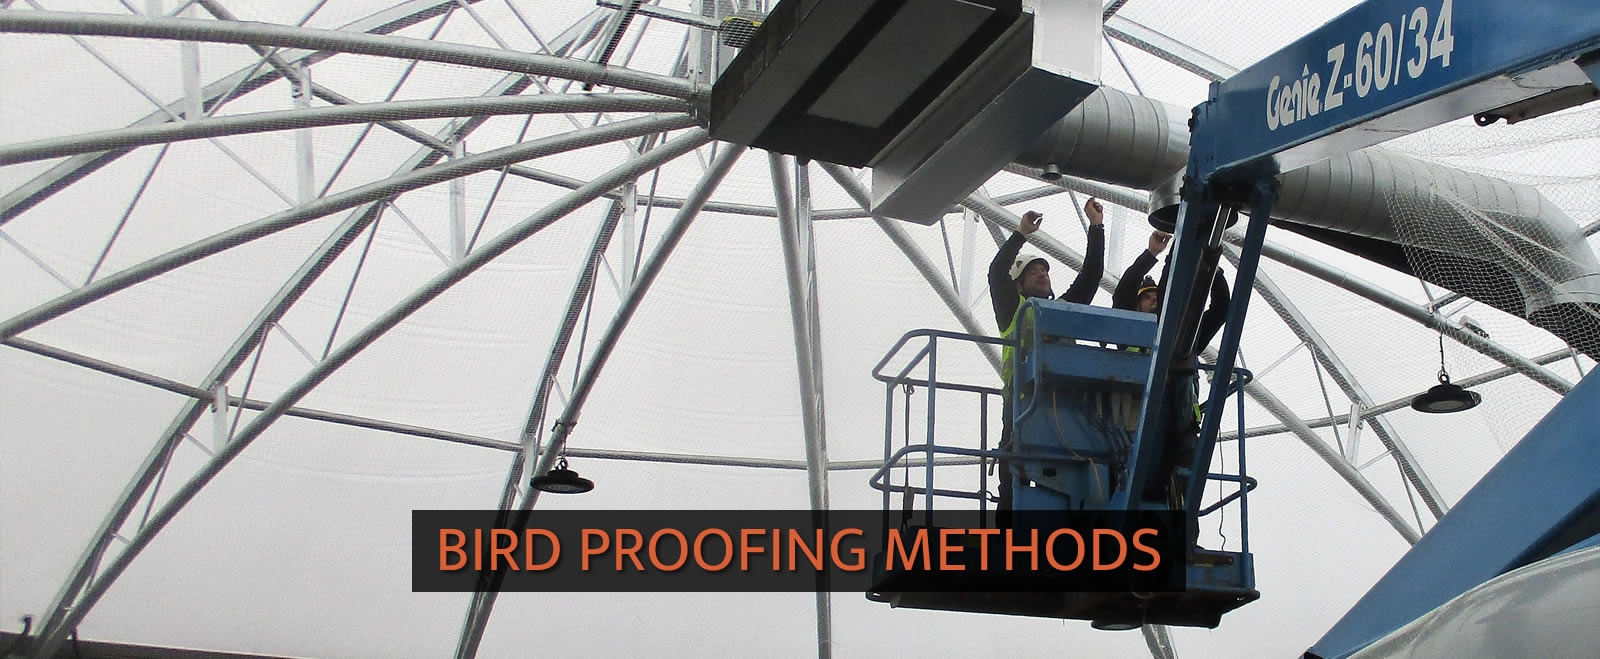 Bird Proofing Methods